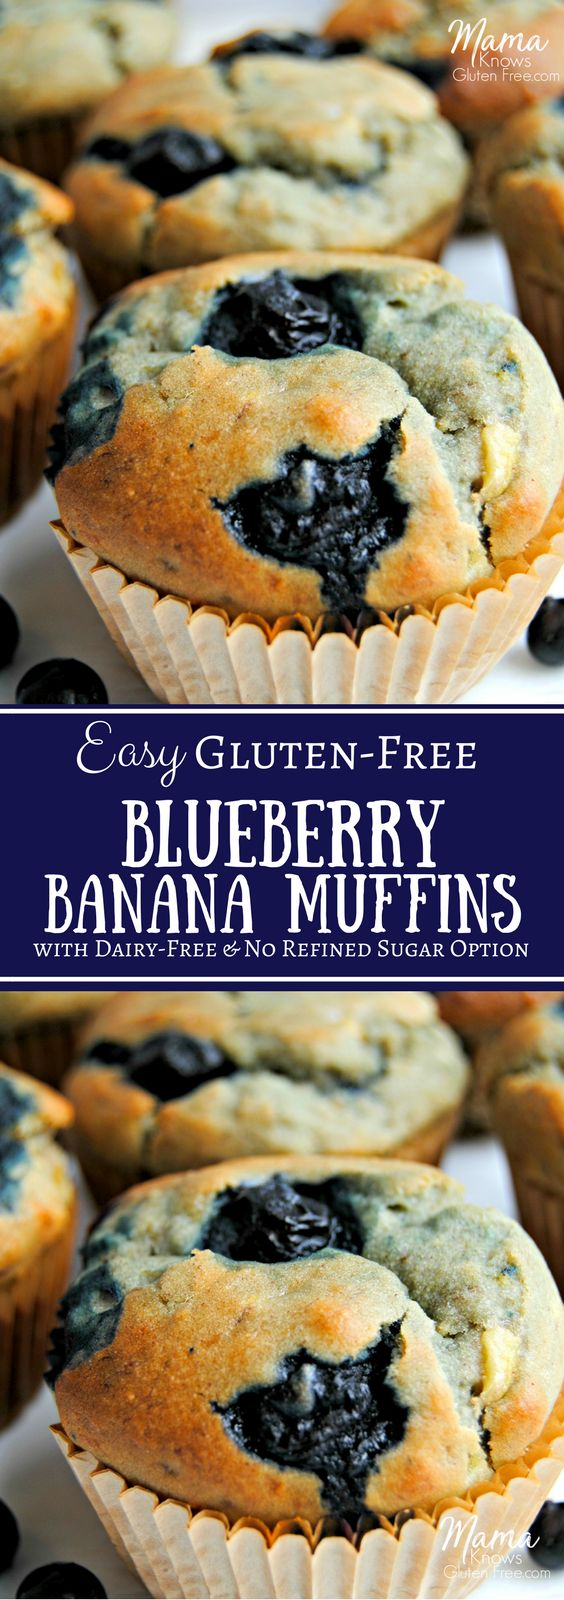 The only gluten-free blueberry banana muffin recipe you'll ever need; a one bowl wonder! No mixer required for these super moist muffins. Dairy-free and no refined sugar option. (Favorite Cake Gluten Free)